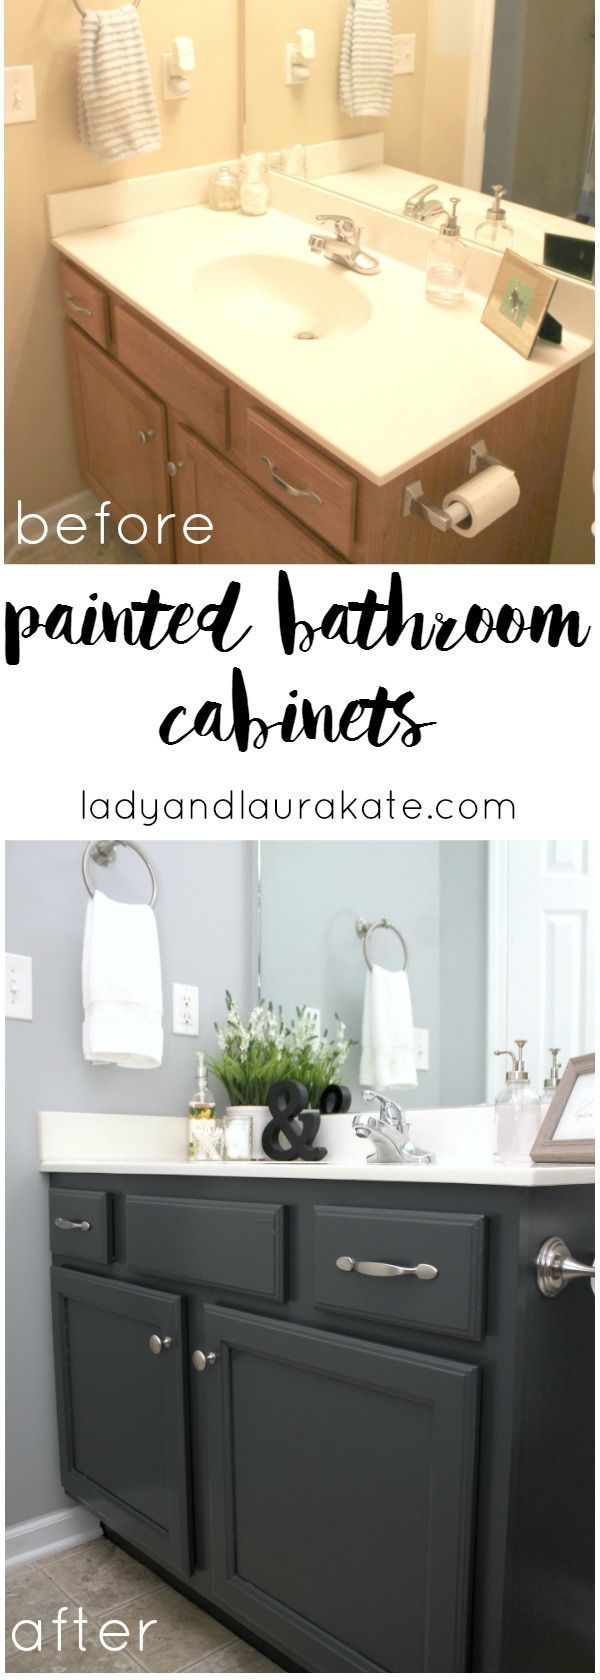 best 25 dark cabinets bathroom ideas on pinterest dark vanity bathroom vanity backsplash and contemporary bathroom mirrors